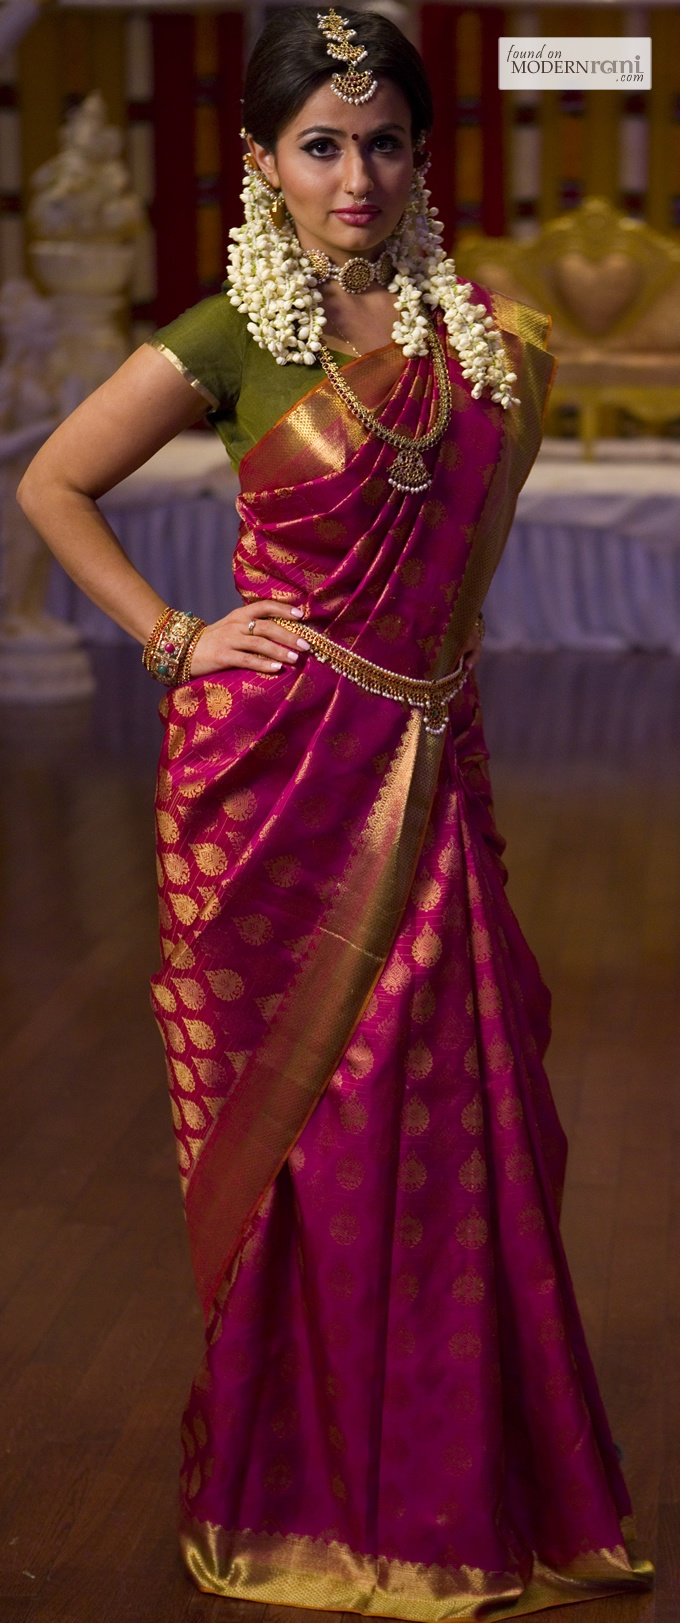 .Just look at the saree...